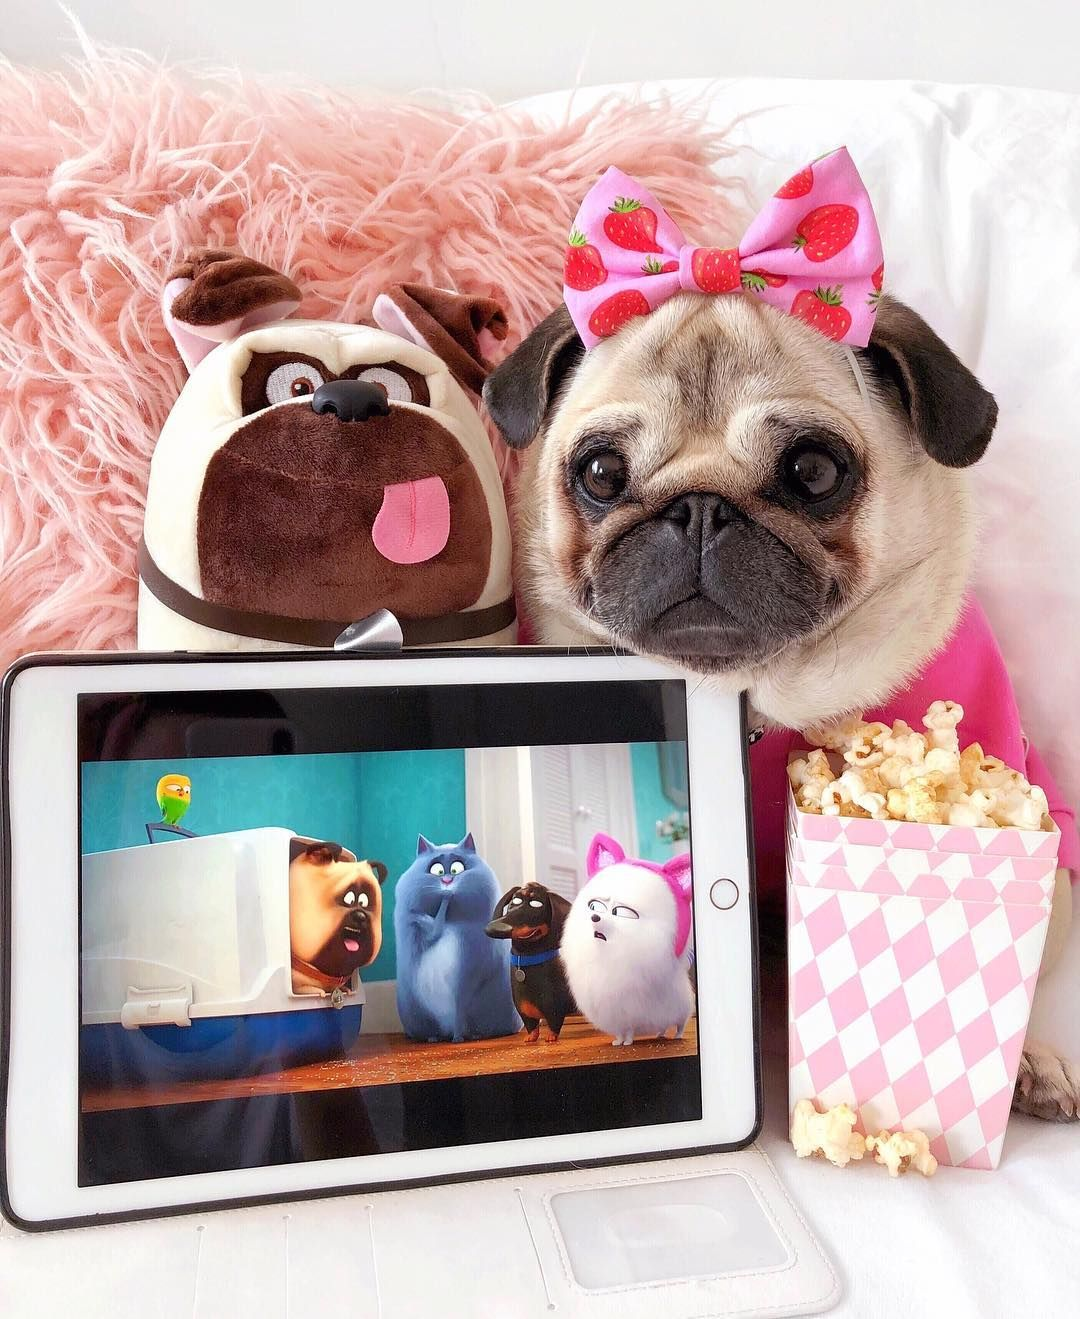 Watching The New Trailer Of The Secret Life Of Pets 2 I Can T Wait To See The Crazy Tricks Of My Favorite Character Mel Cute Pug Puppies Cute Pugs Pugs Funny